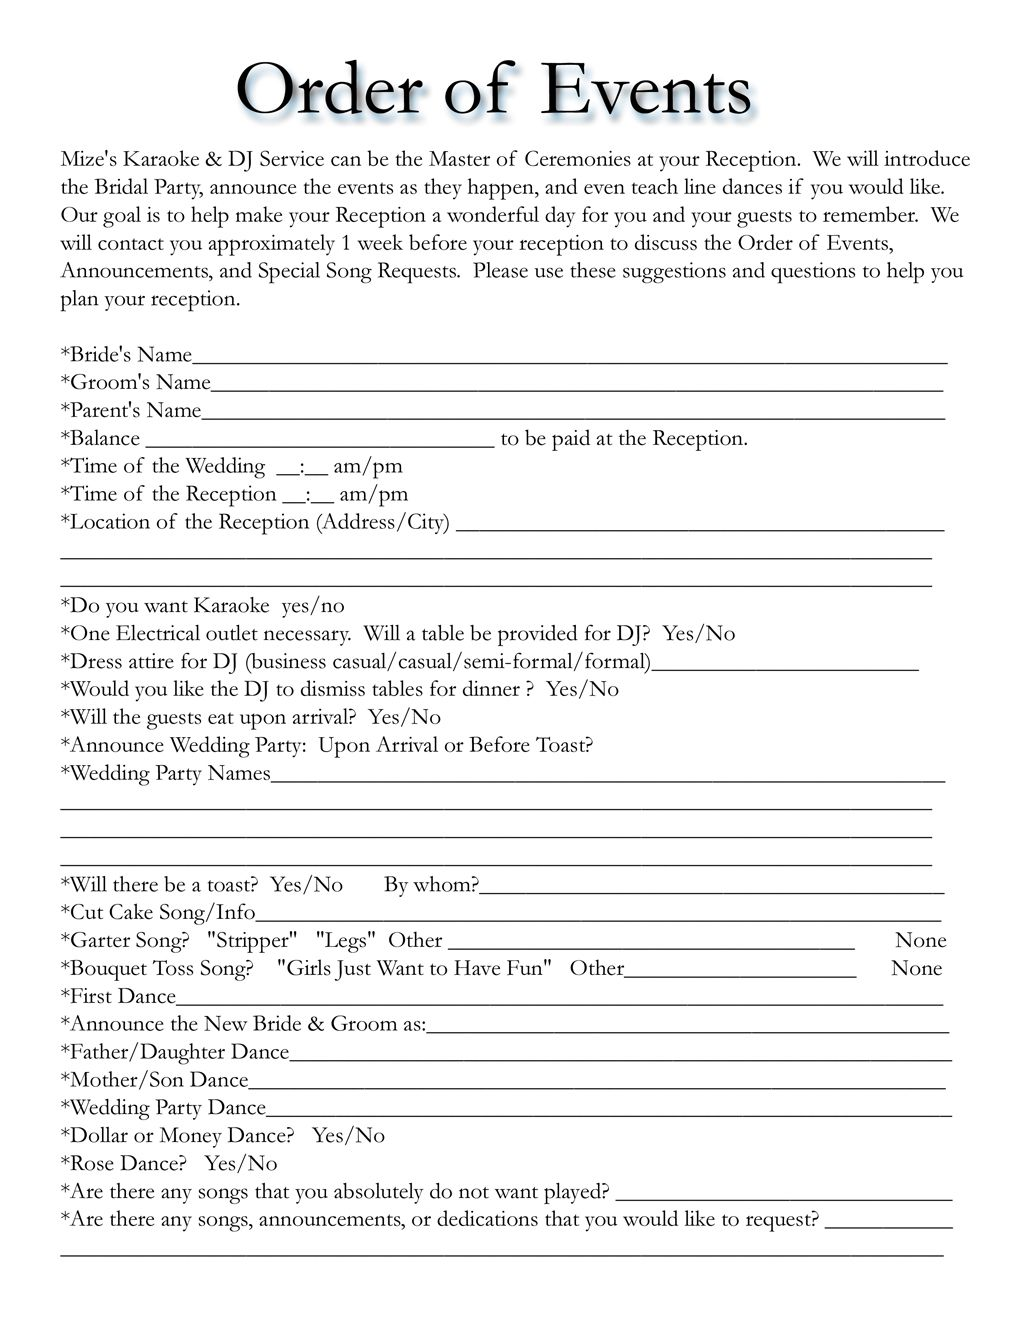 wedding itinerary templates free   Seattlebaby.co